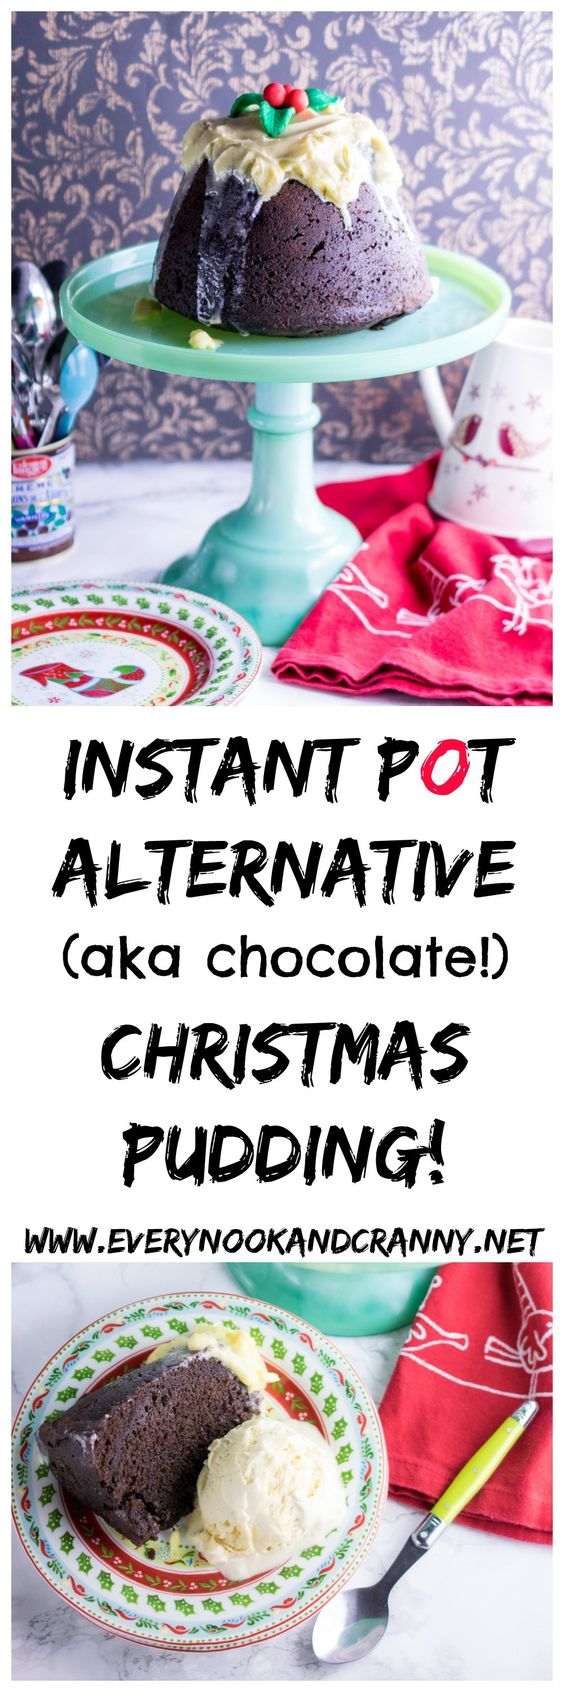 Now, as much as I love a traditional Christmas Pudding full of rich boozy dried fruits, aromatic with the scent of the season,mixed spice, and I've evenconverted the haters in myfamily with my